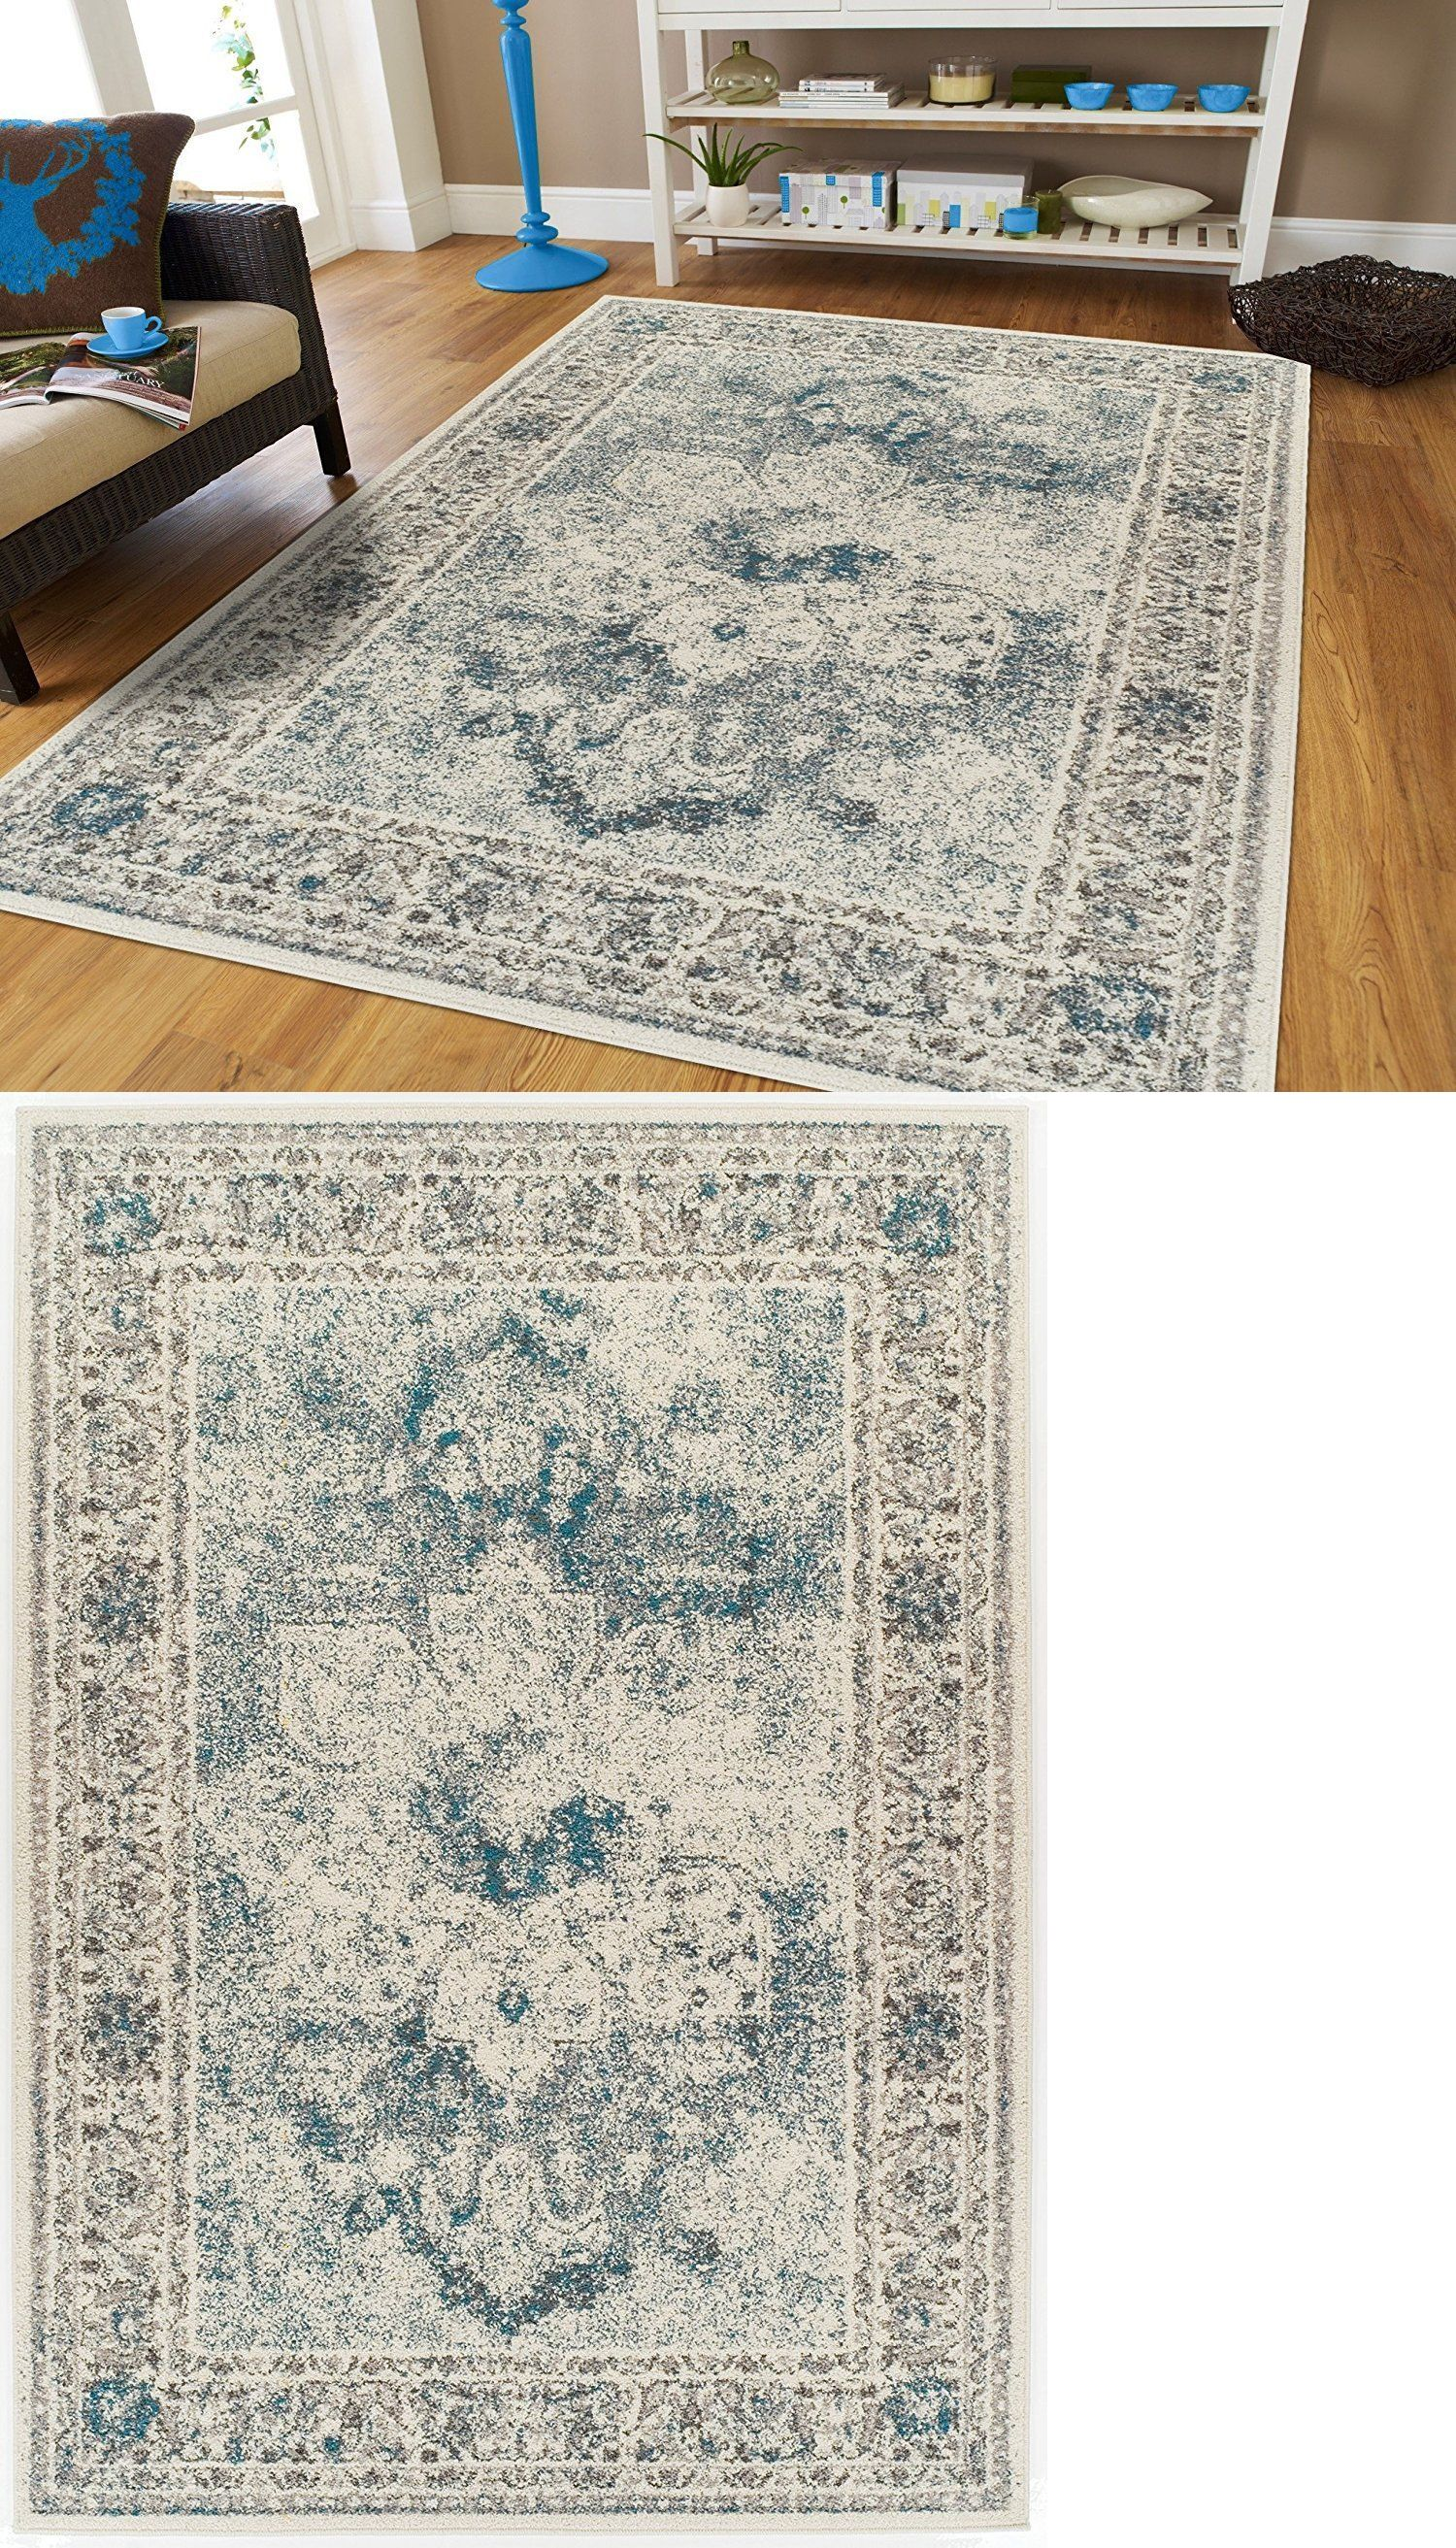 Pin On Area Rugs 45510